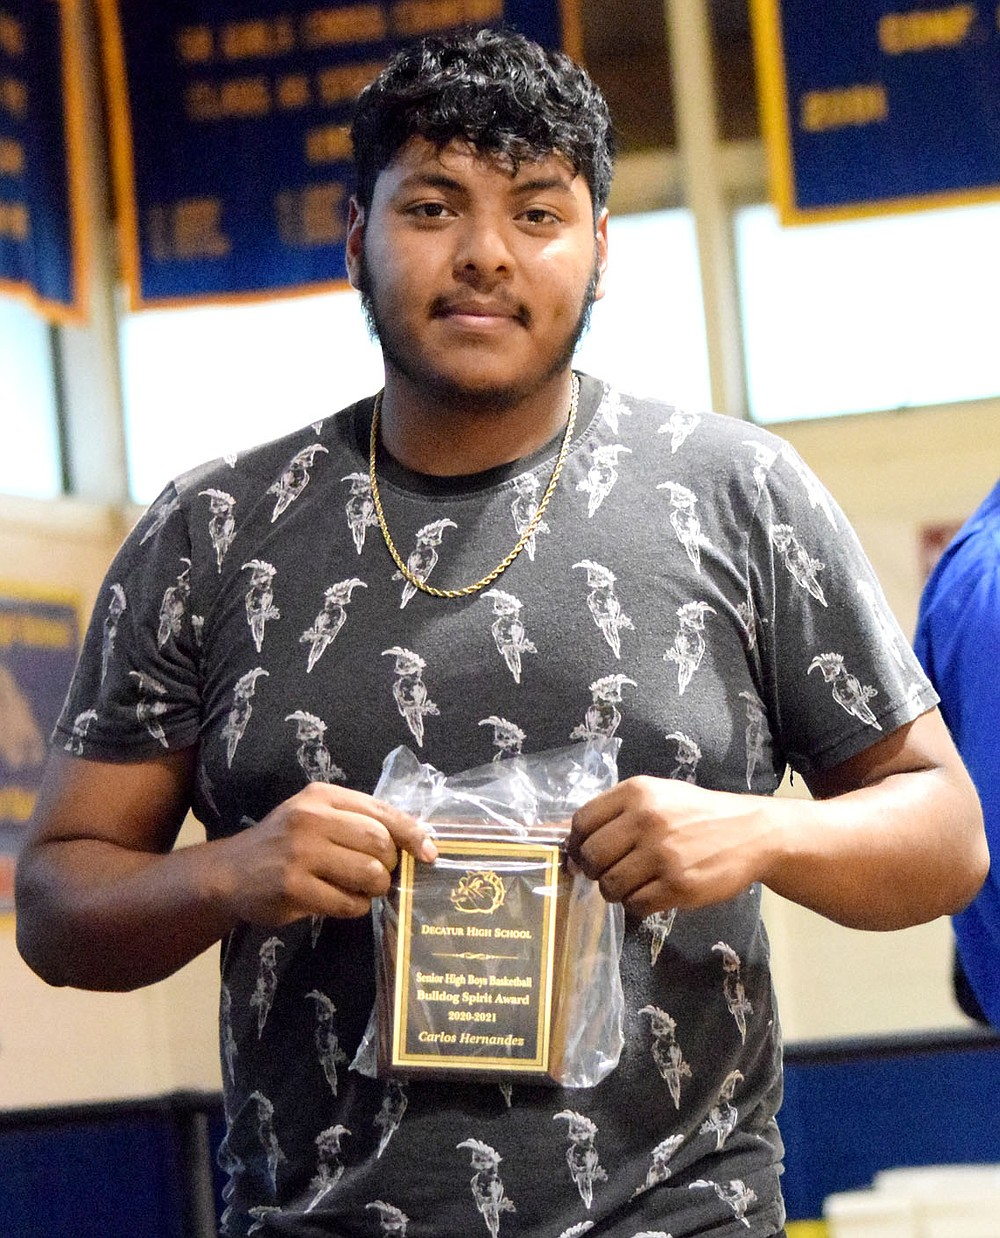 Westside Eagle Observer/MIKE ECKELS  Carlos Hernandez displays his Bulldog Spirit Award in basketball during the 2021 Bulldog Sports Award Program in Decatur May 18. Hernandez was the backbone for the 2021 Decatur Bulldog soccer team leading the offensive drives with 17 goals this season. His efforts earned him a sport on the 3A State Soccer team as well as the Bulldogs Most Valuable Player of the Year award he also received during the sports program.